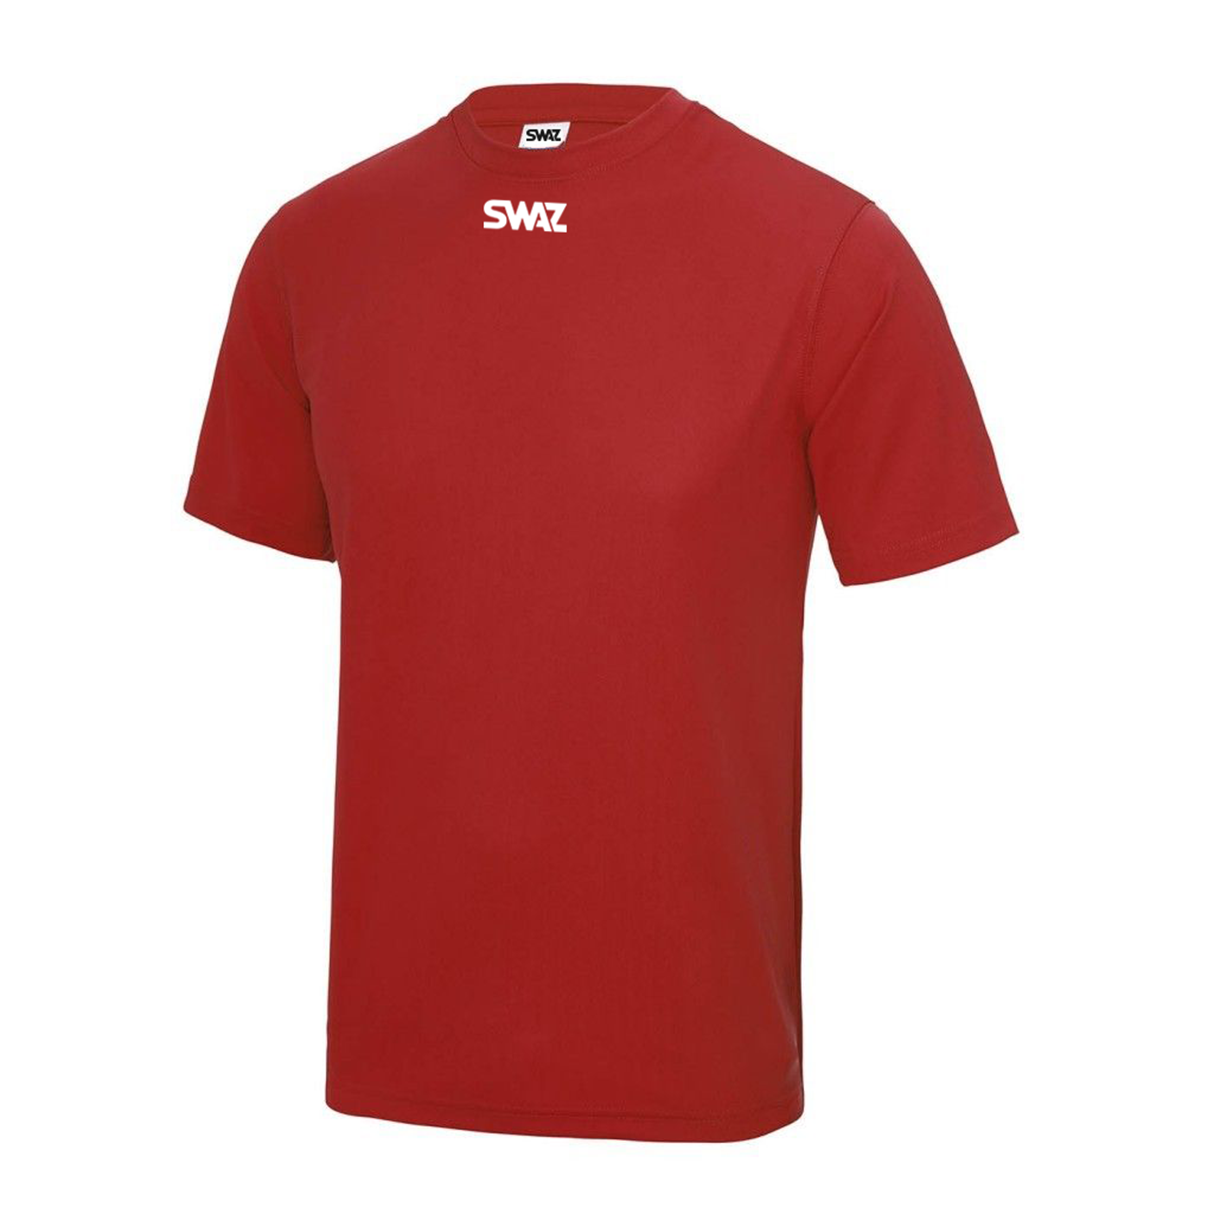 SWAZ Club Training T-Shirt – Red